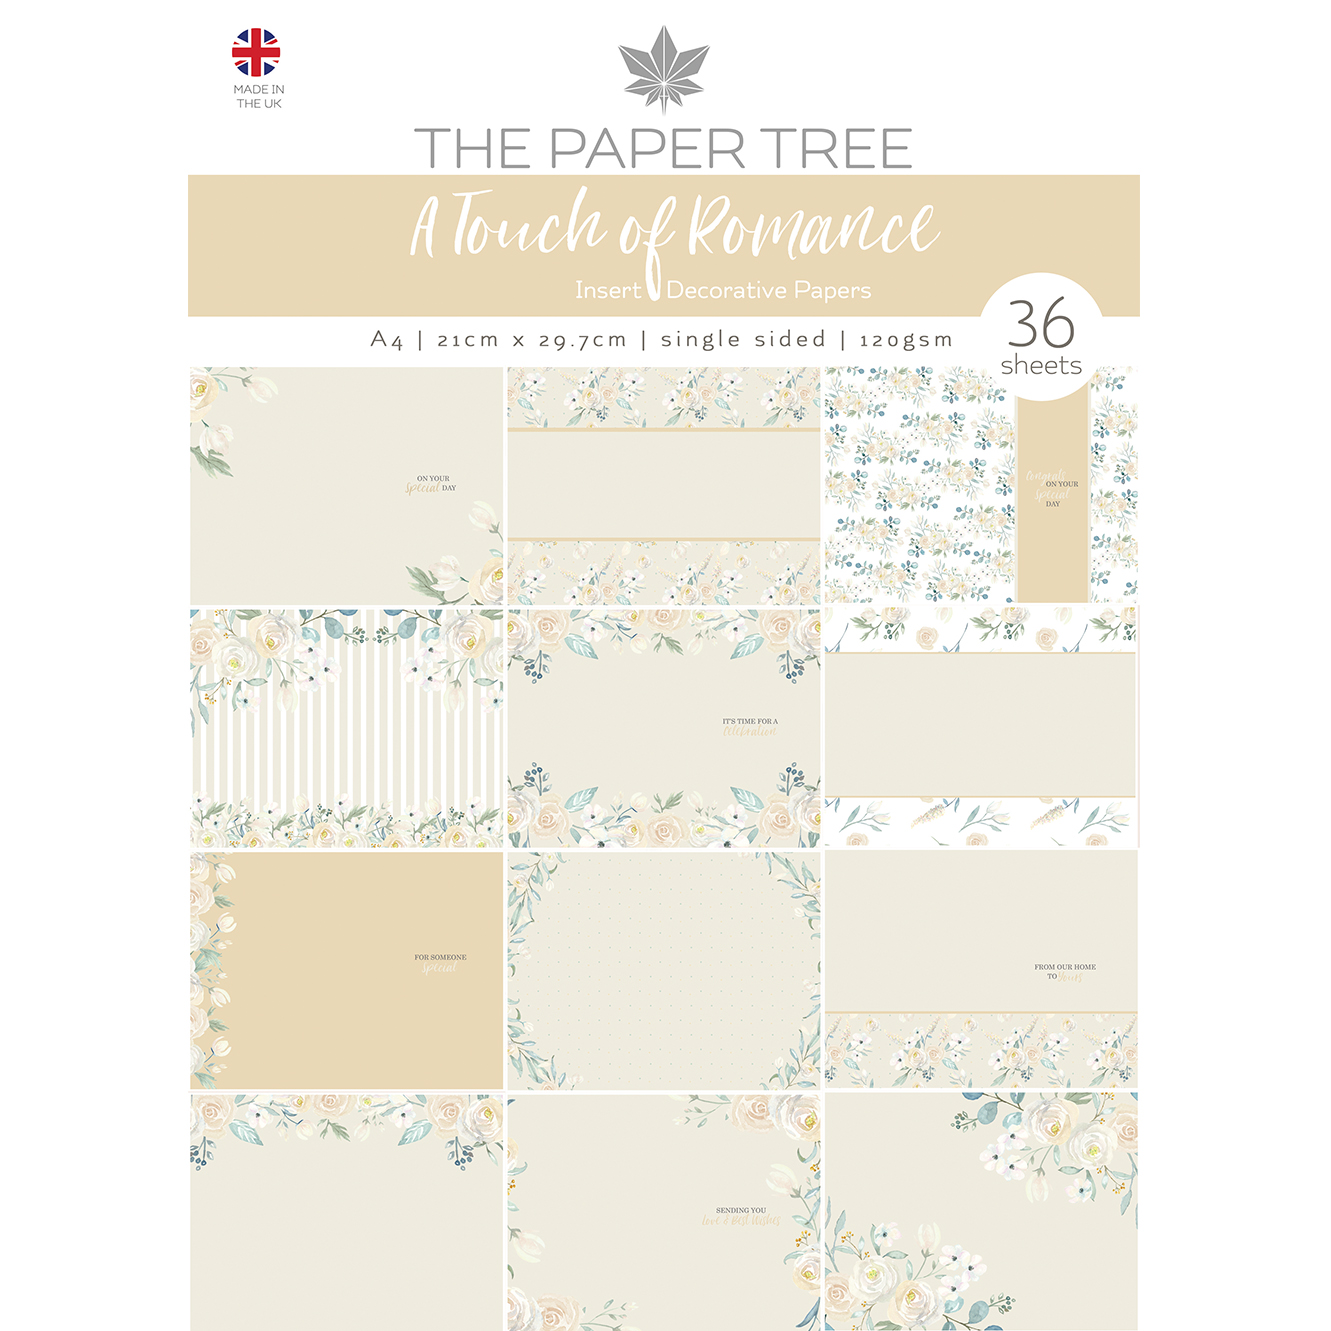 The Paper Tree A Touch of Romance Insert Collection